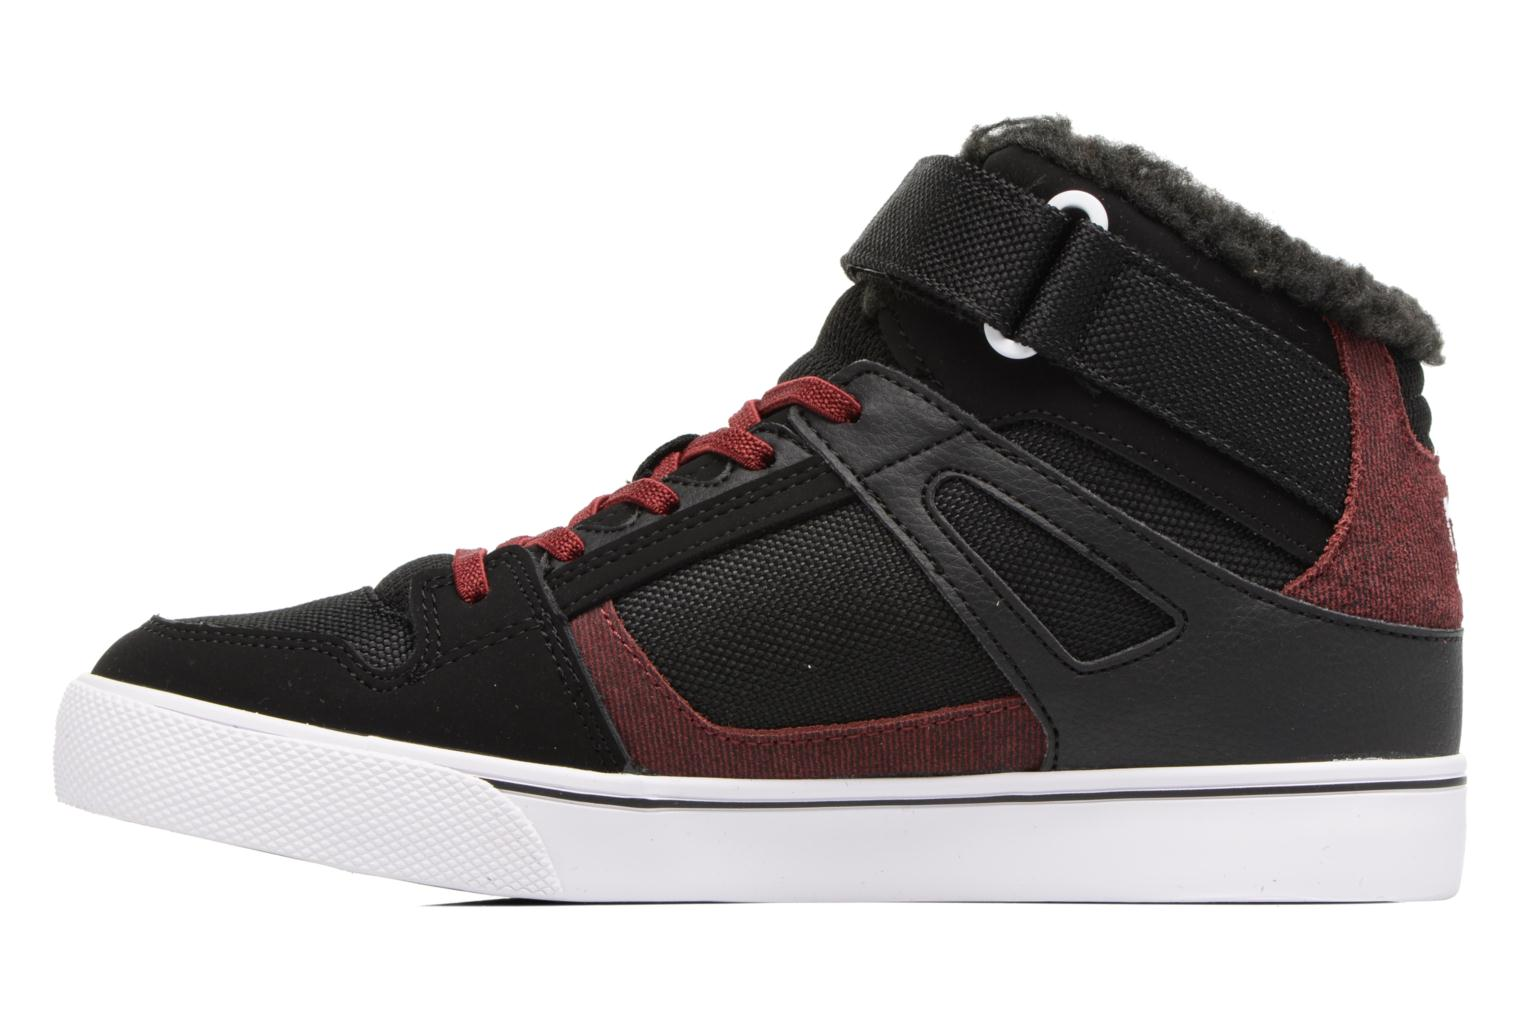 SPARTAN HIGH EV B Black/Dark Red